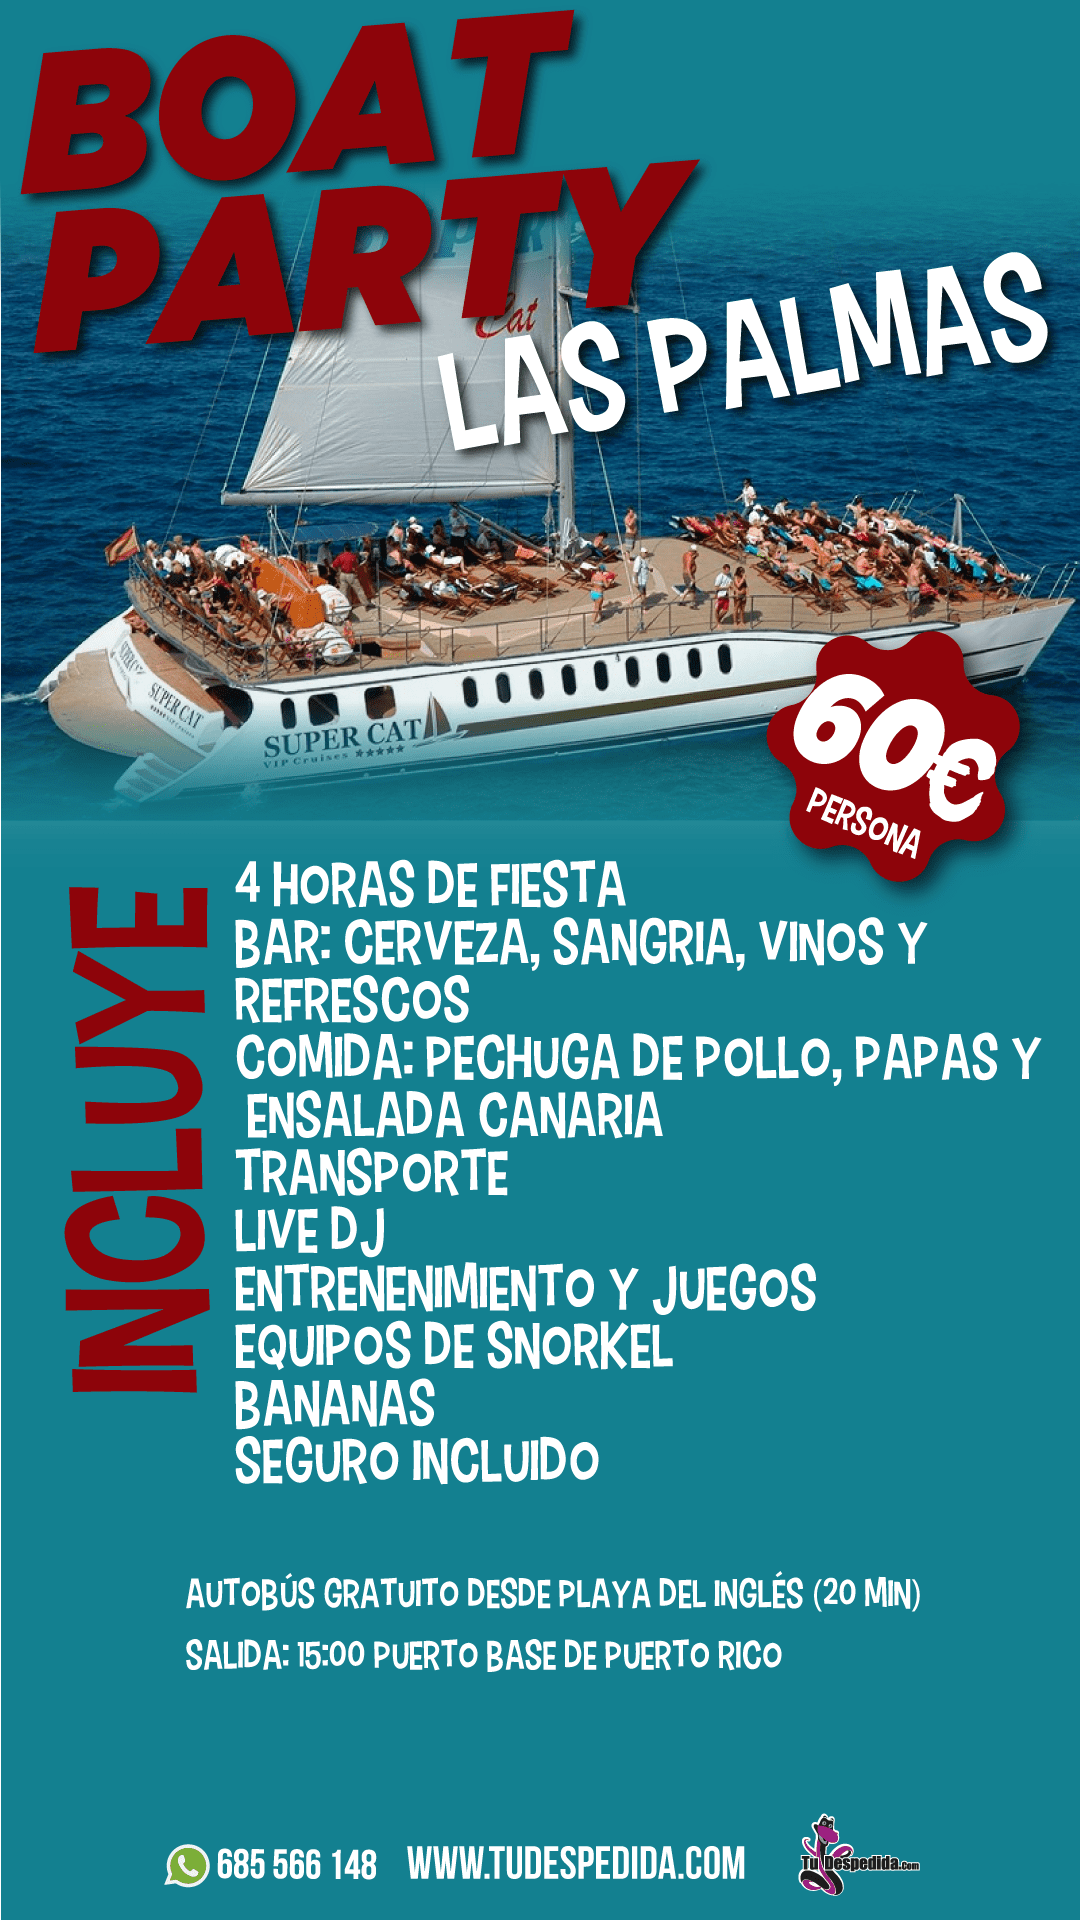 Boat Party Las Palmas